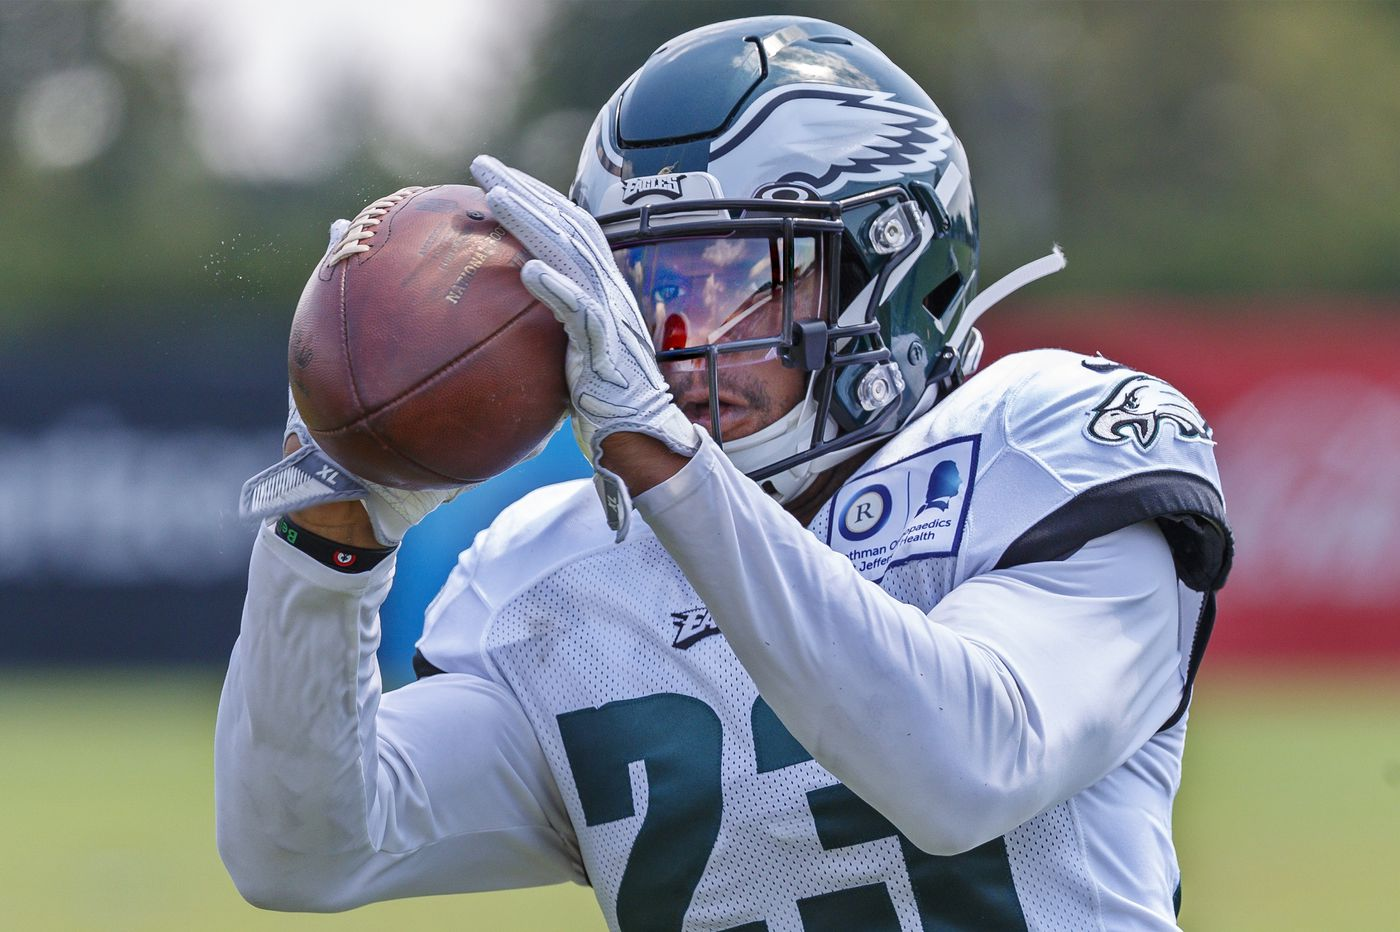 Eagles Practice Observations: Clayton Thorson goes deep; Rodney McLeod inches along; Jordan Howard remains patient